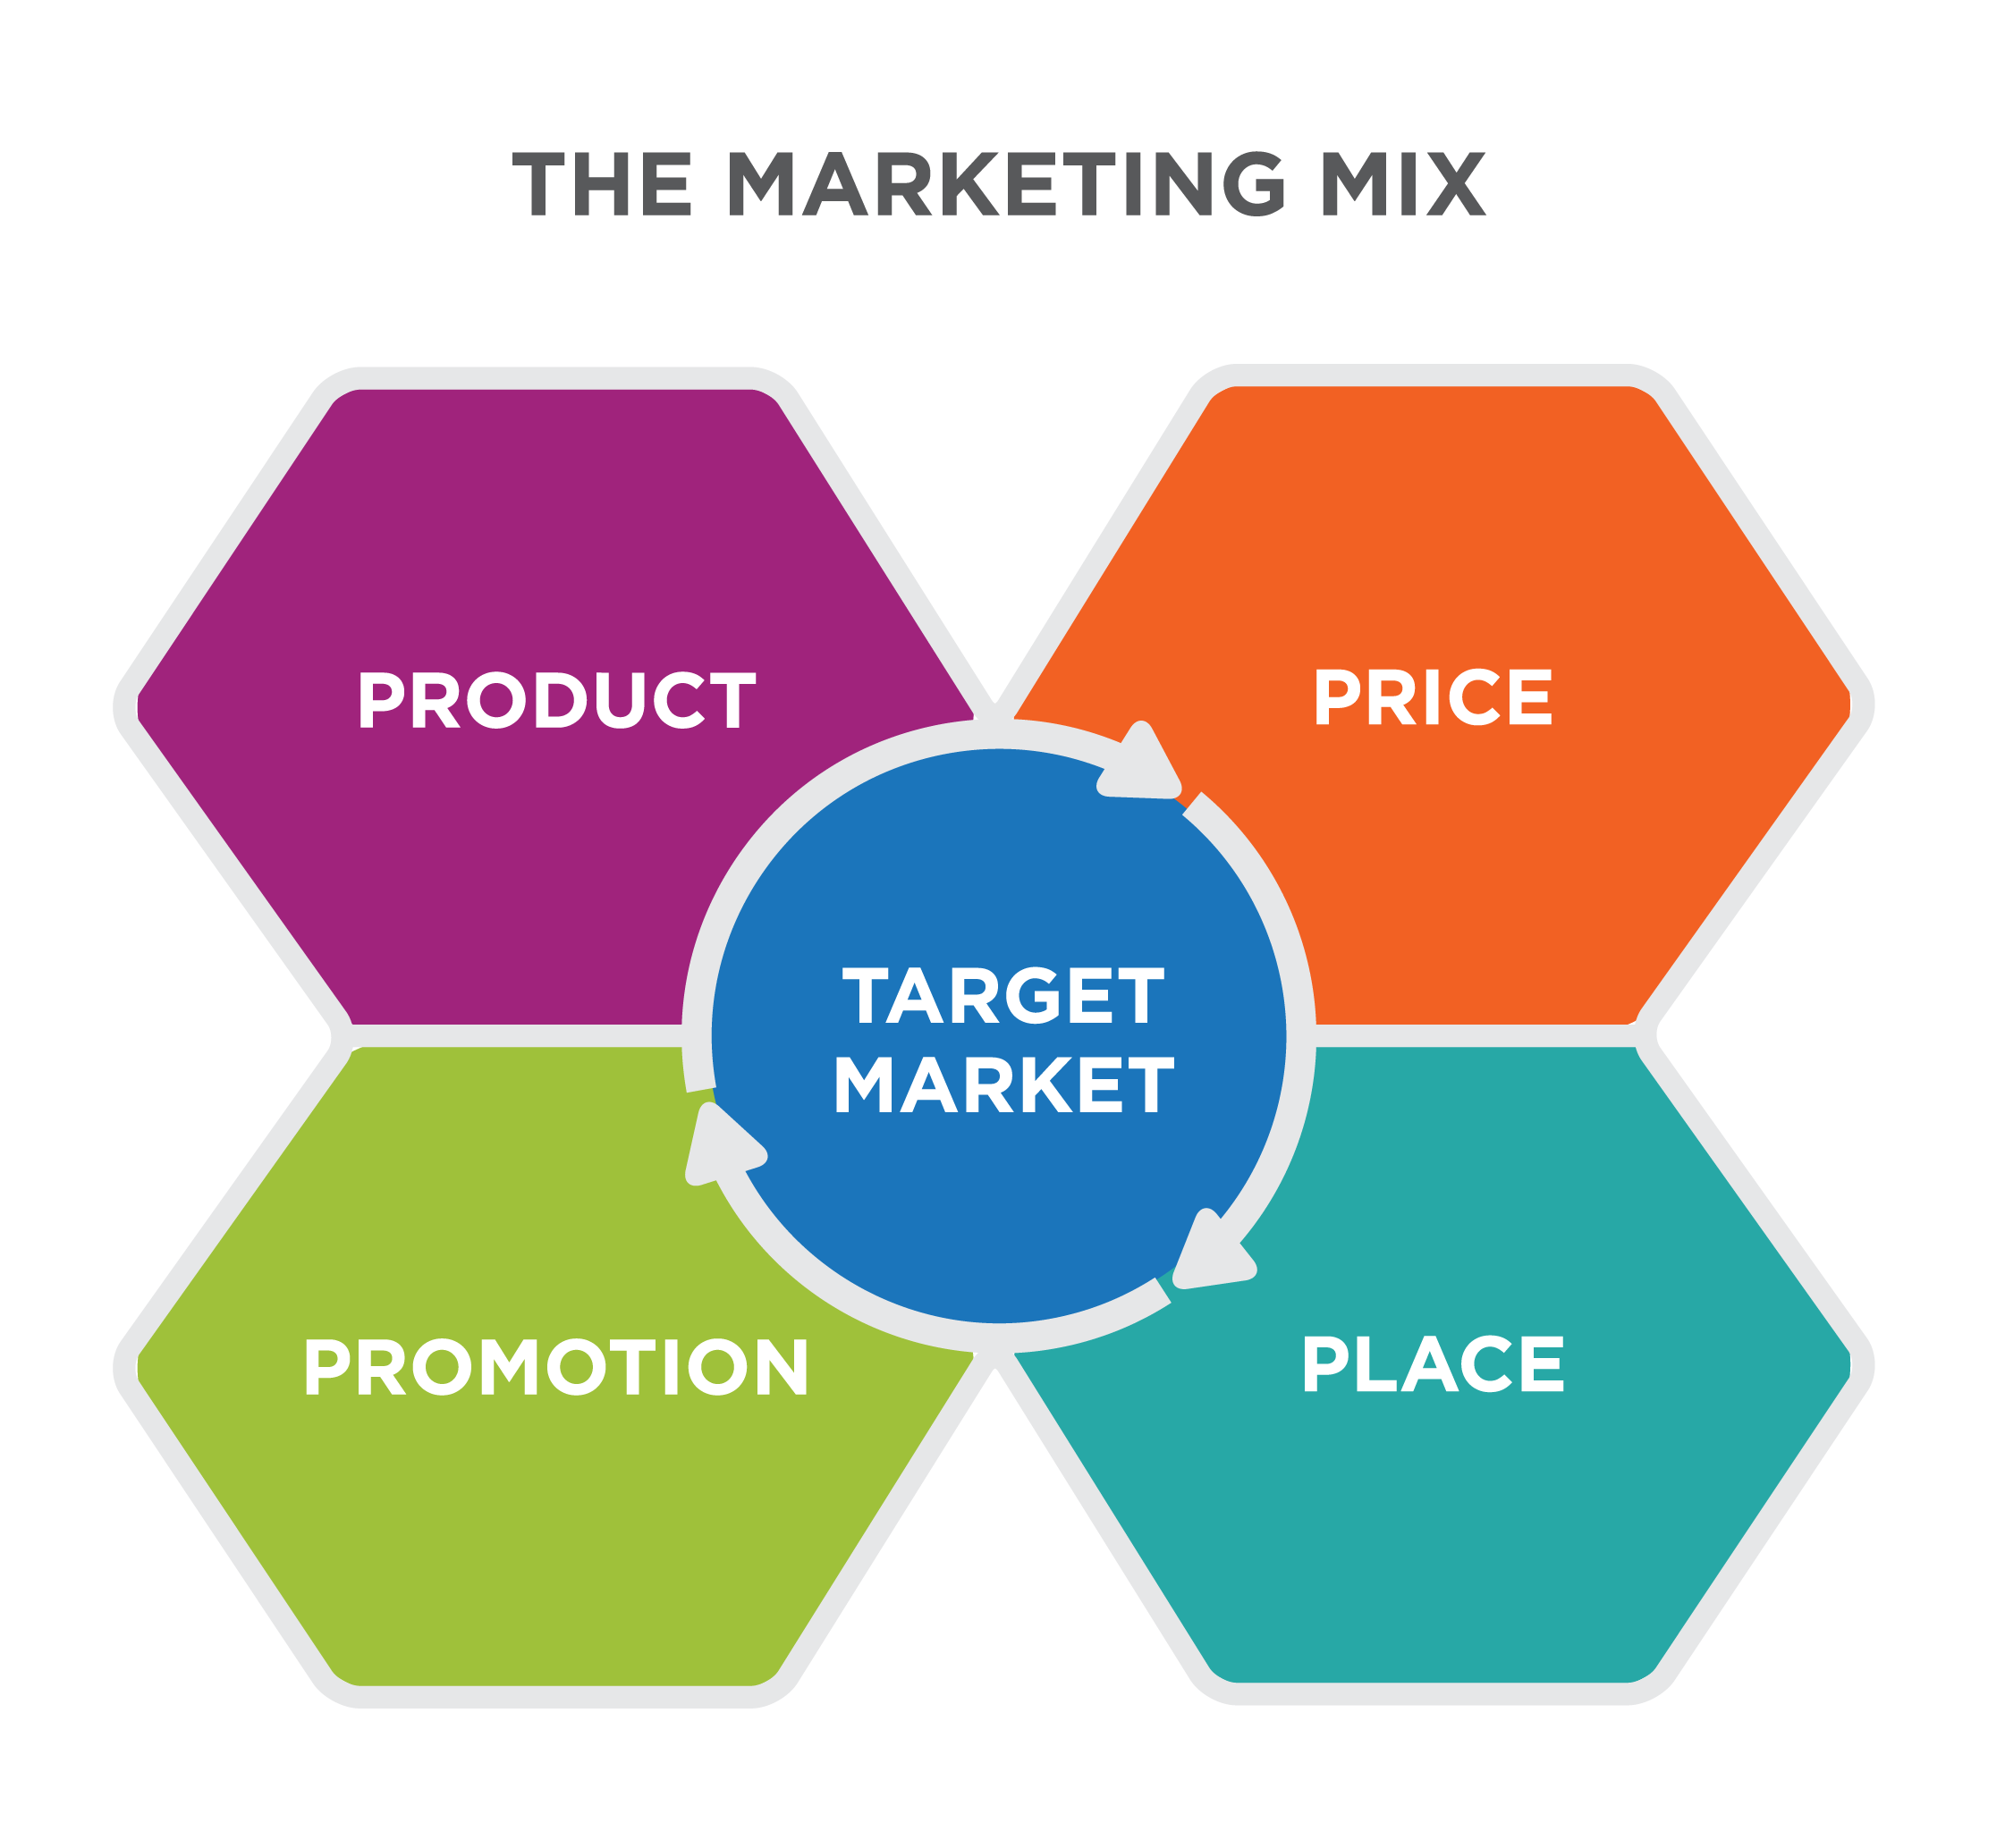 strategic marketing recommended marketing mix Use this example of a marketing mix and marketing mix to understand the most important elements of the marketing mix and to develop best-fit tactics and strategies for your business outsourcing your marketing strategy and implementation will allow you to concentrate on developing.